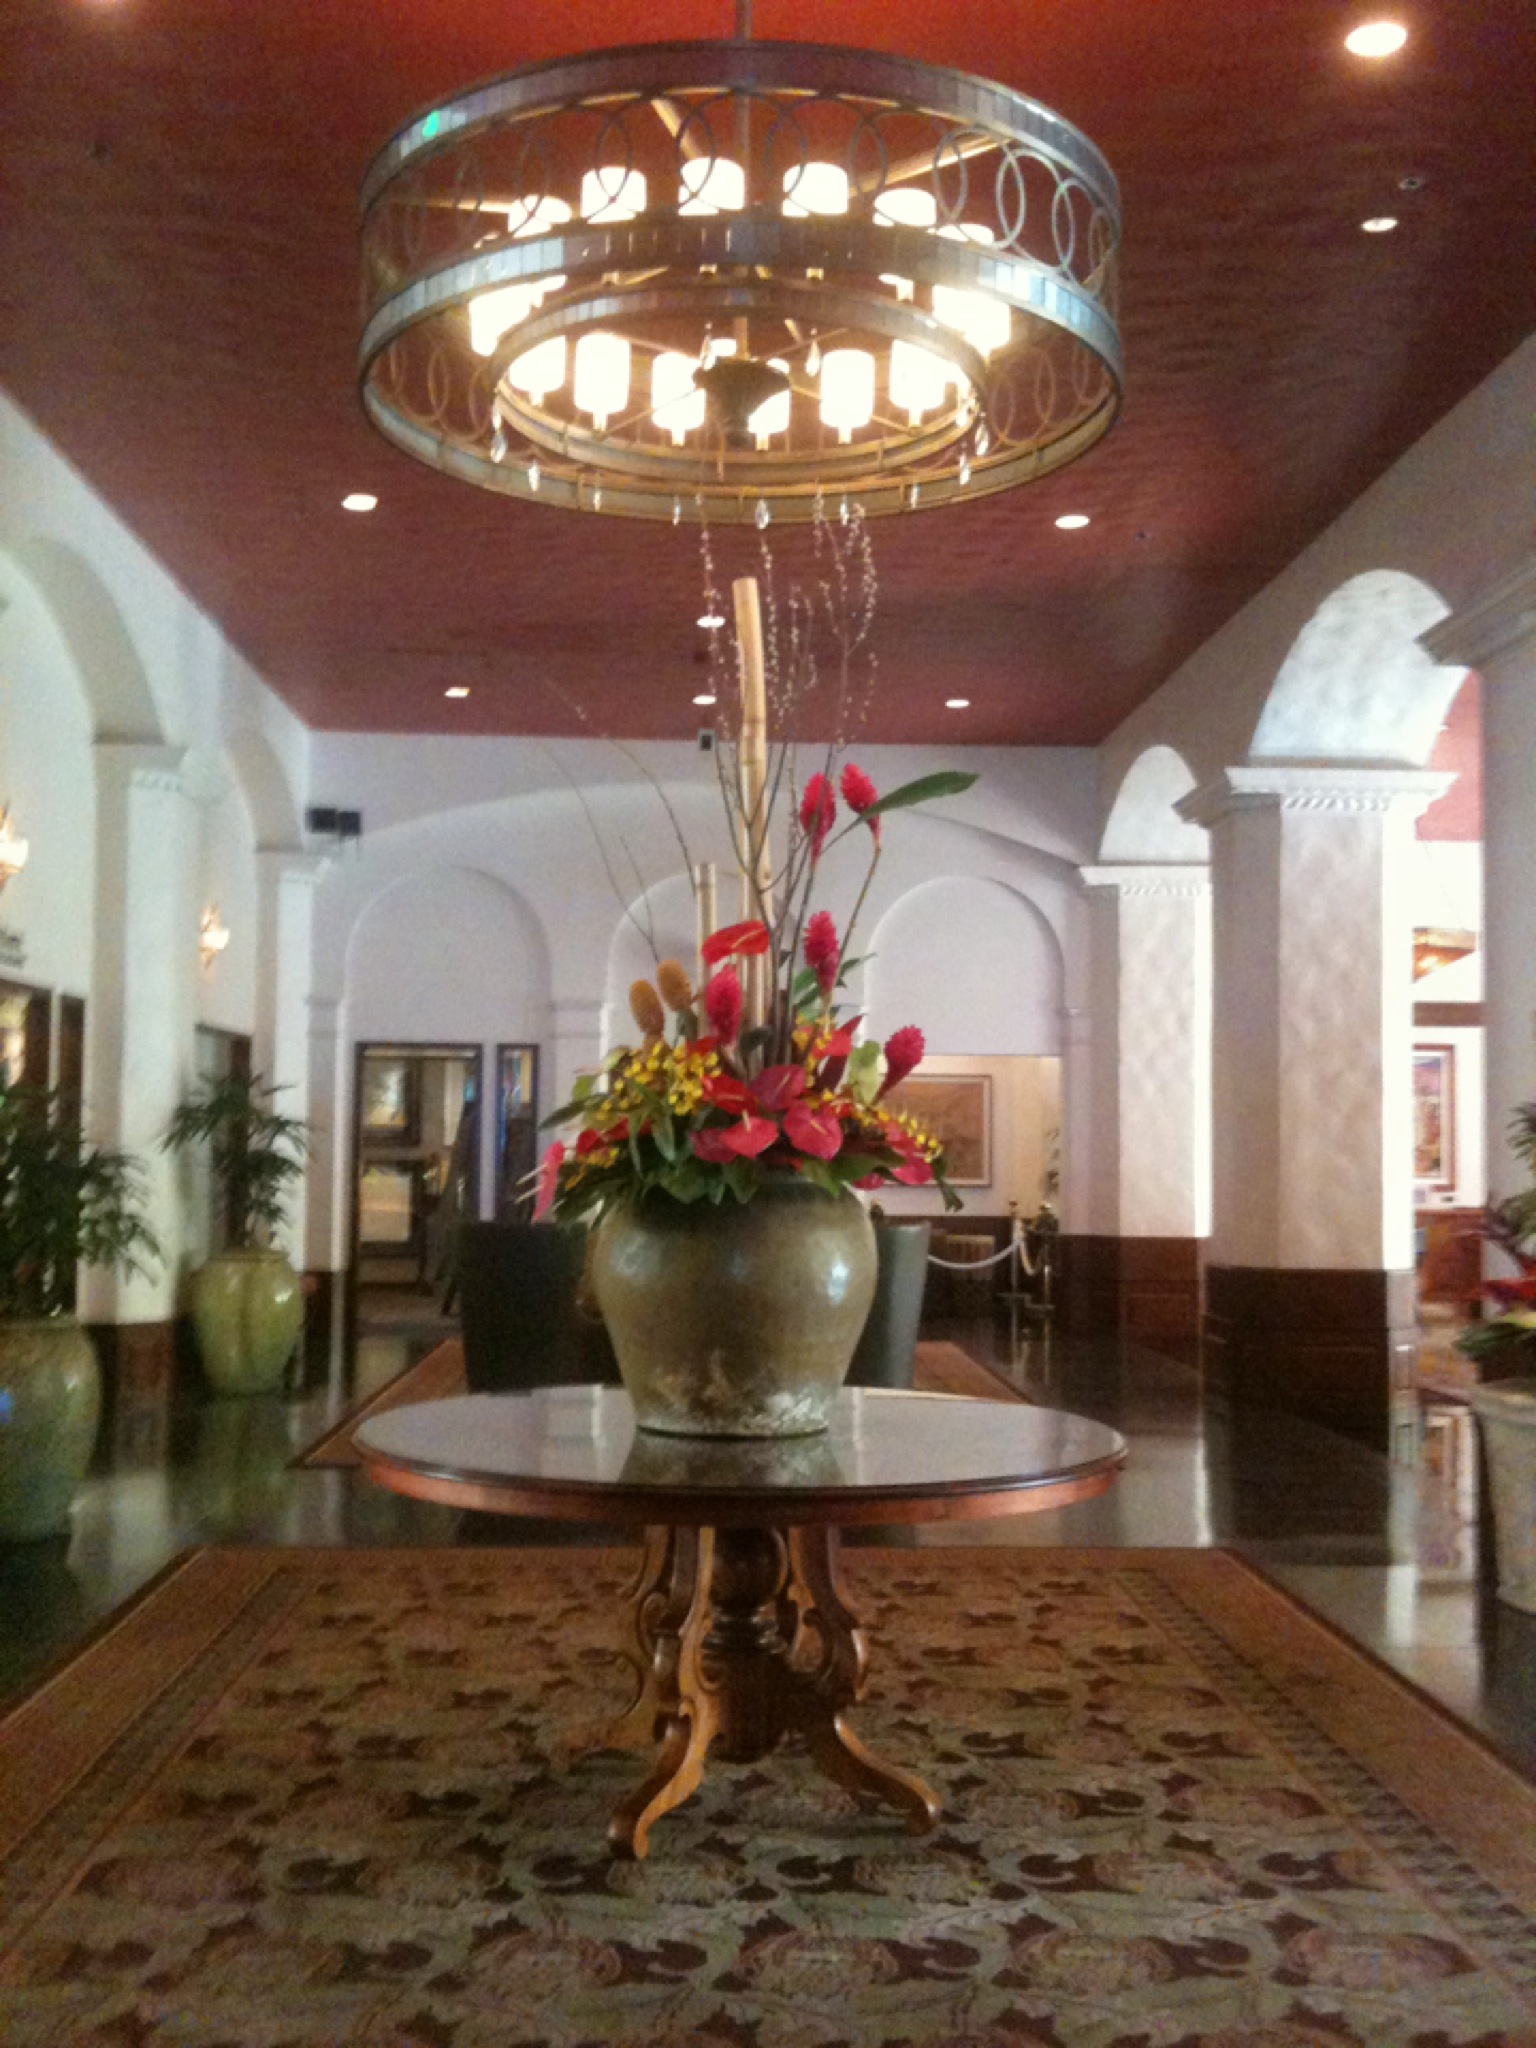 The Royal Hawaiian Hotel – Honolulu, Hawaii | Hotel Slippers